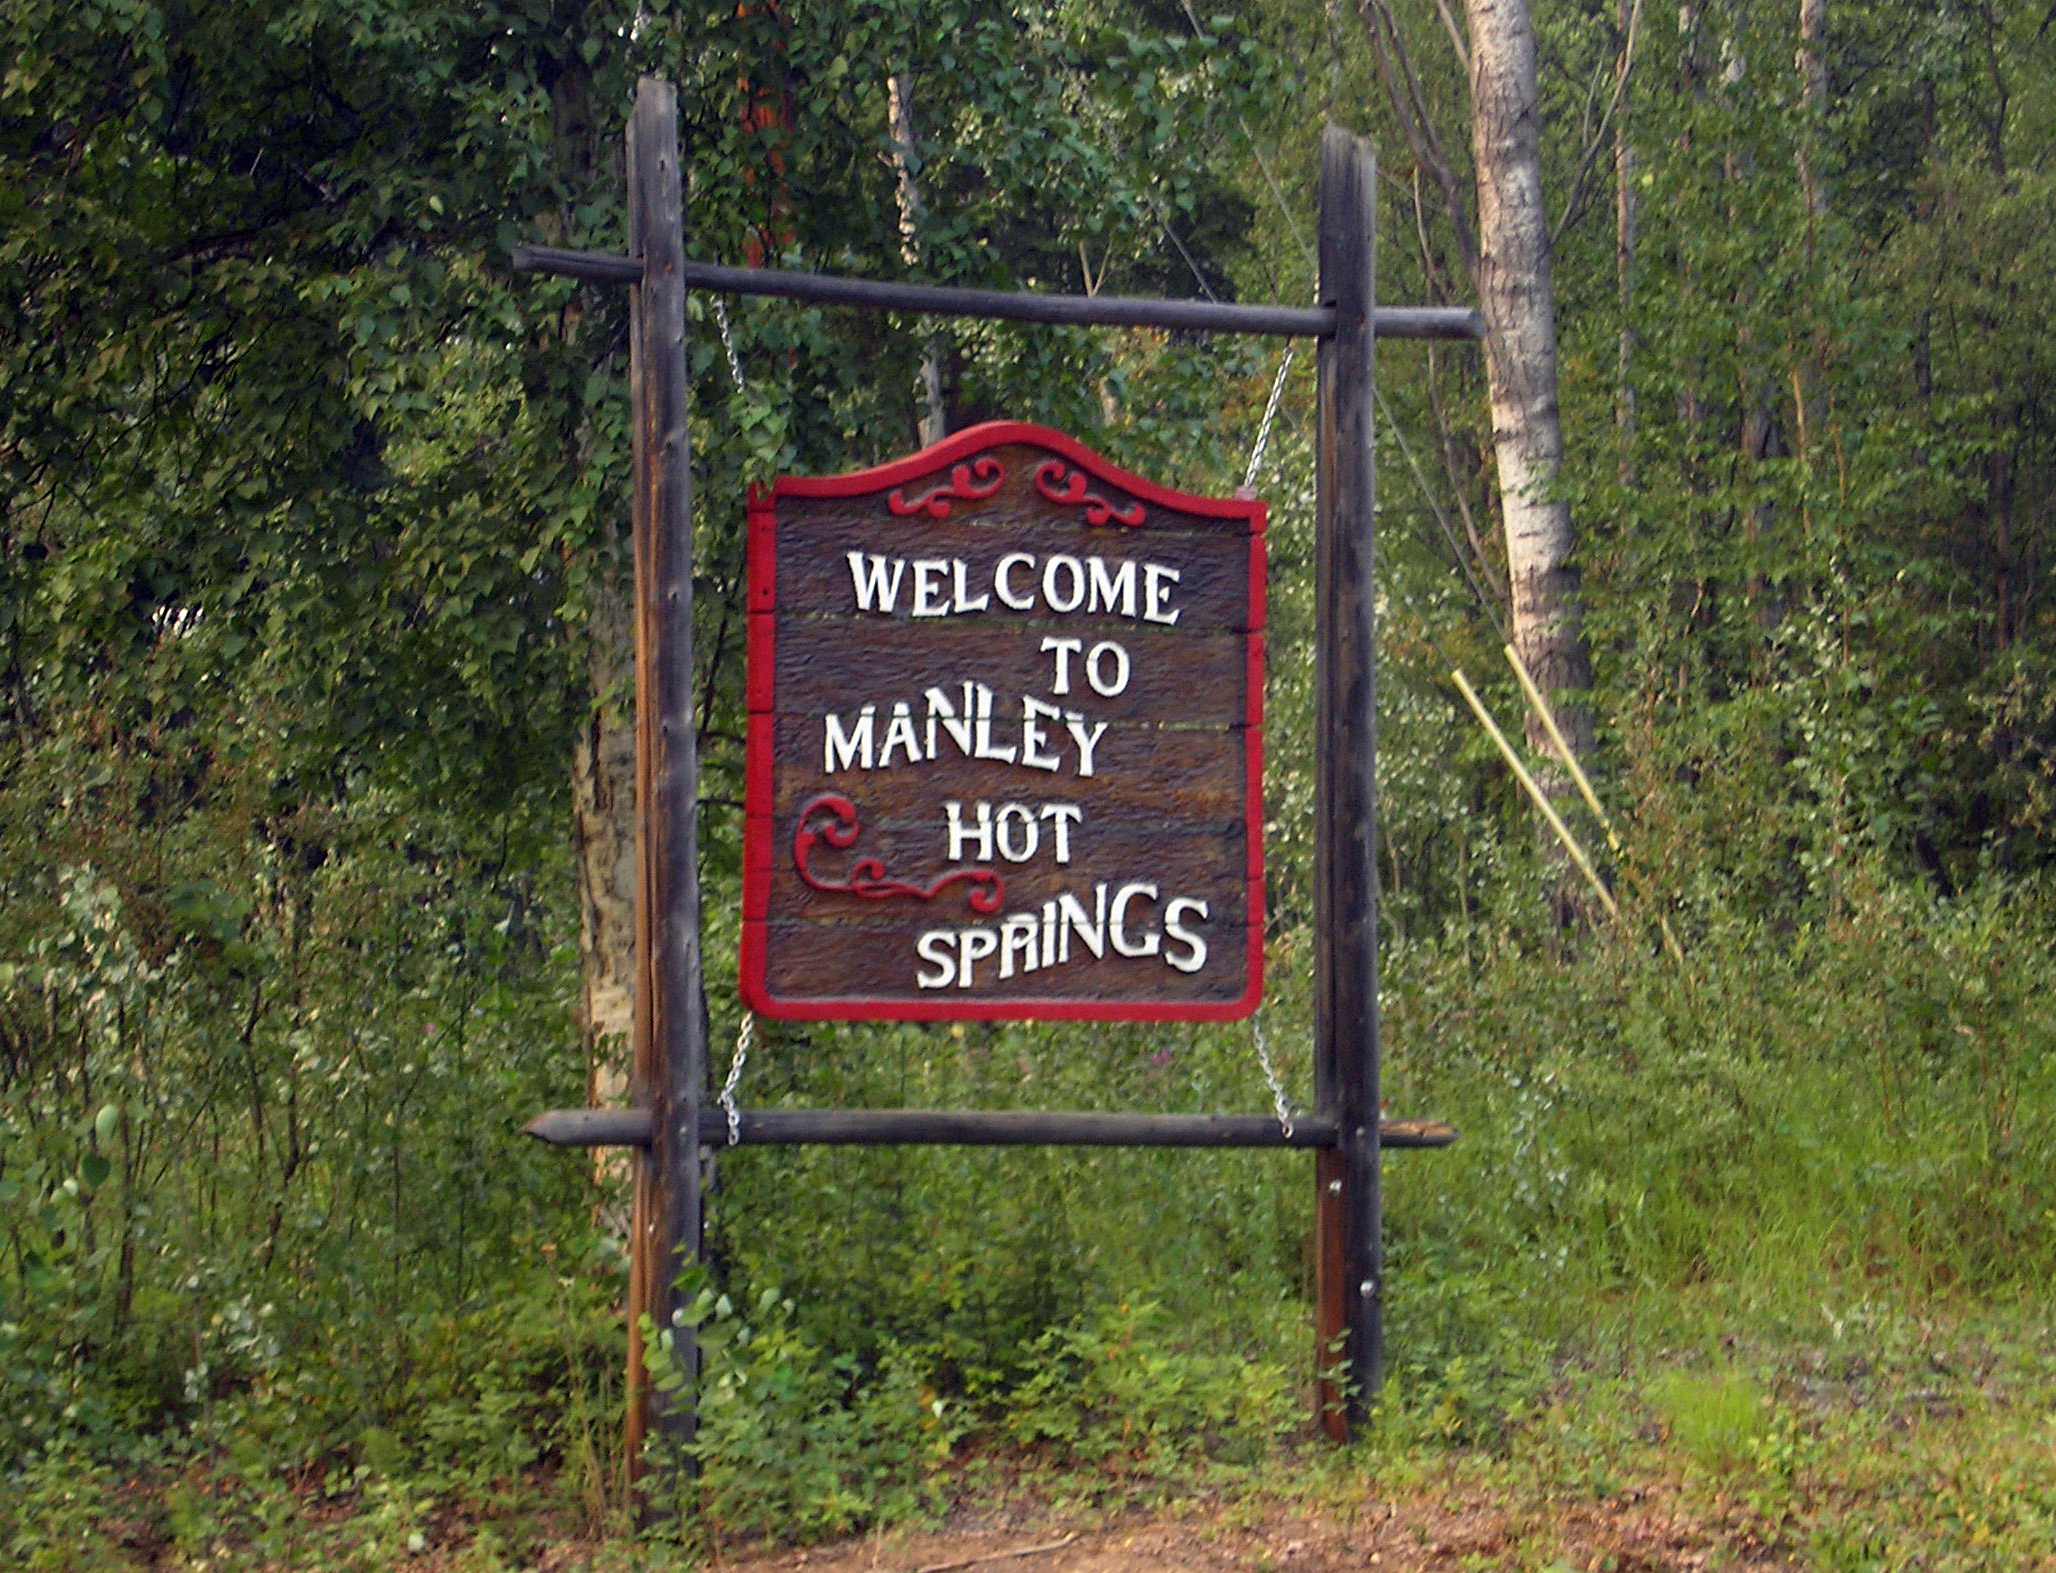 manley hot springs jewish dating site Browse profiles & photos of engineer singles in manley hot springs, ak join matchcom, the leader in online dating with more dates, more relationships and more marriages than any other dating site  gay dating, jewish , lesbian singles, single parents.